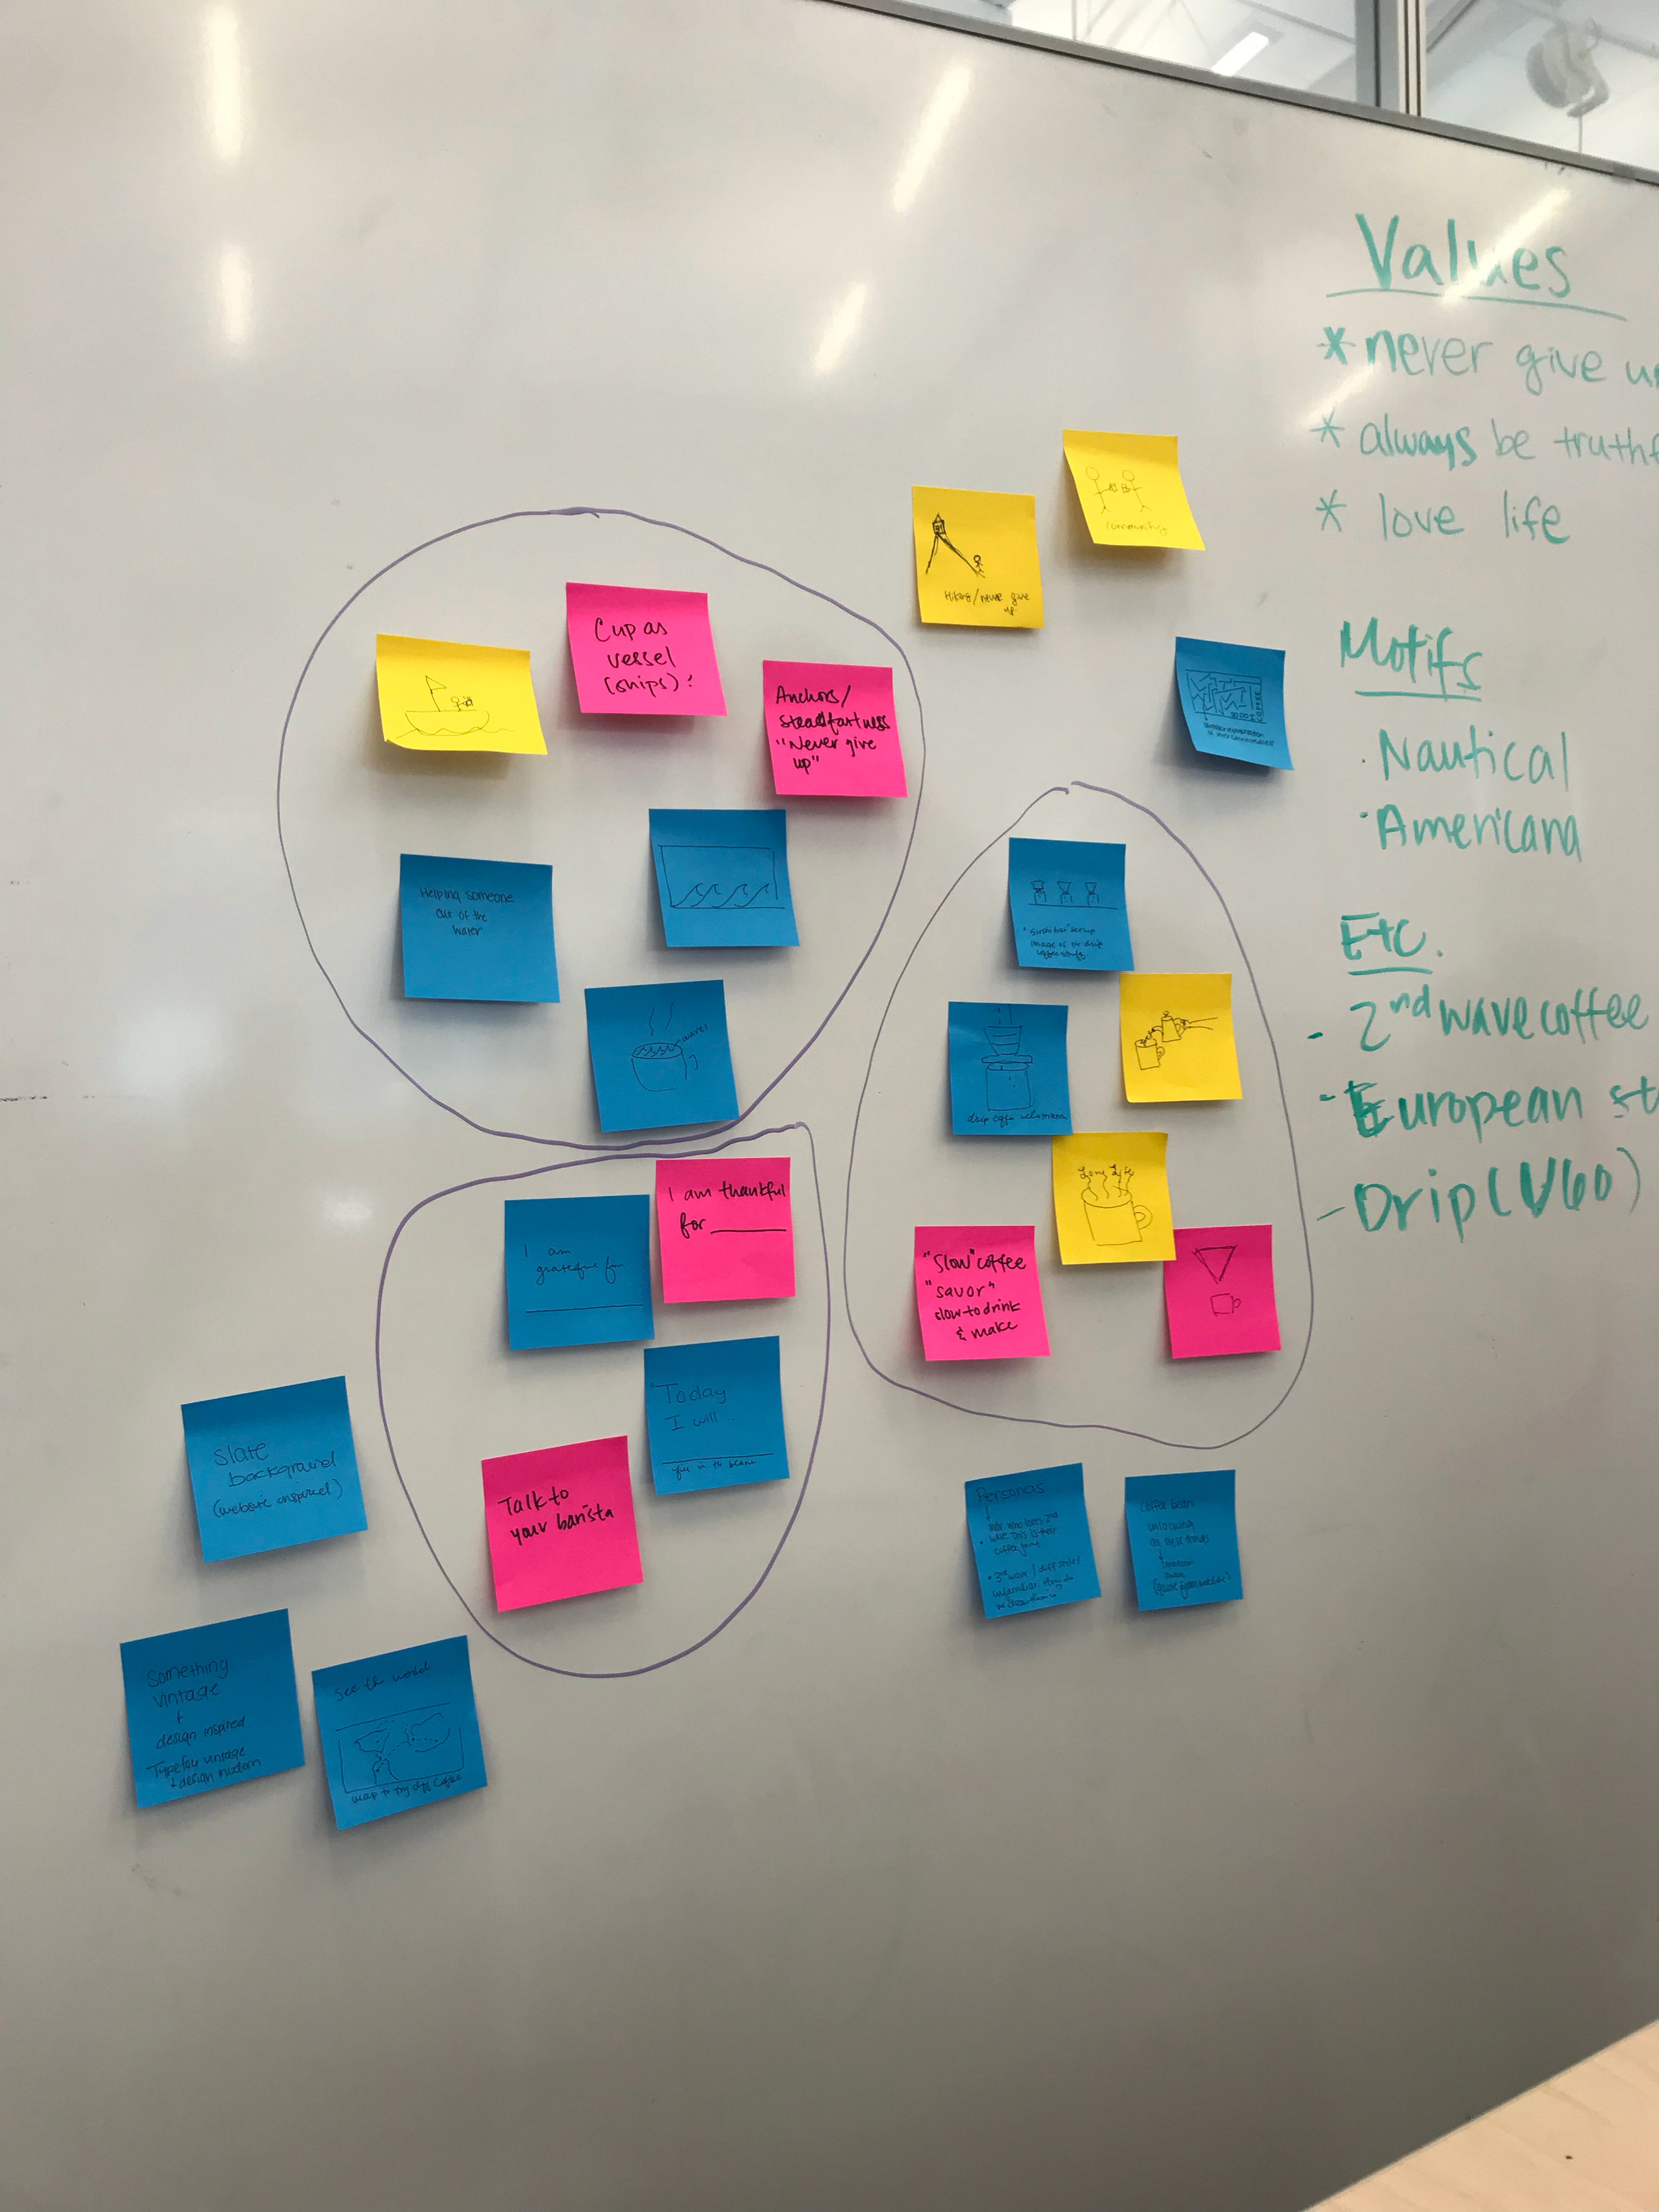 After brainstorming, we clustered our ideas into three key themes.